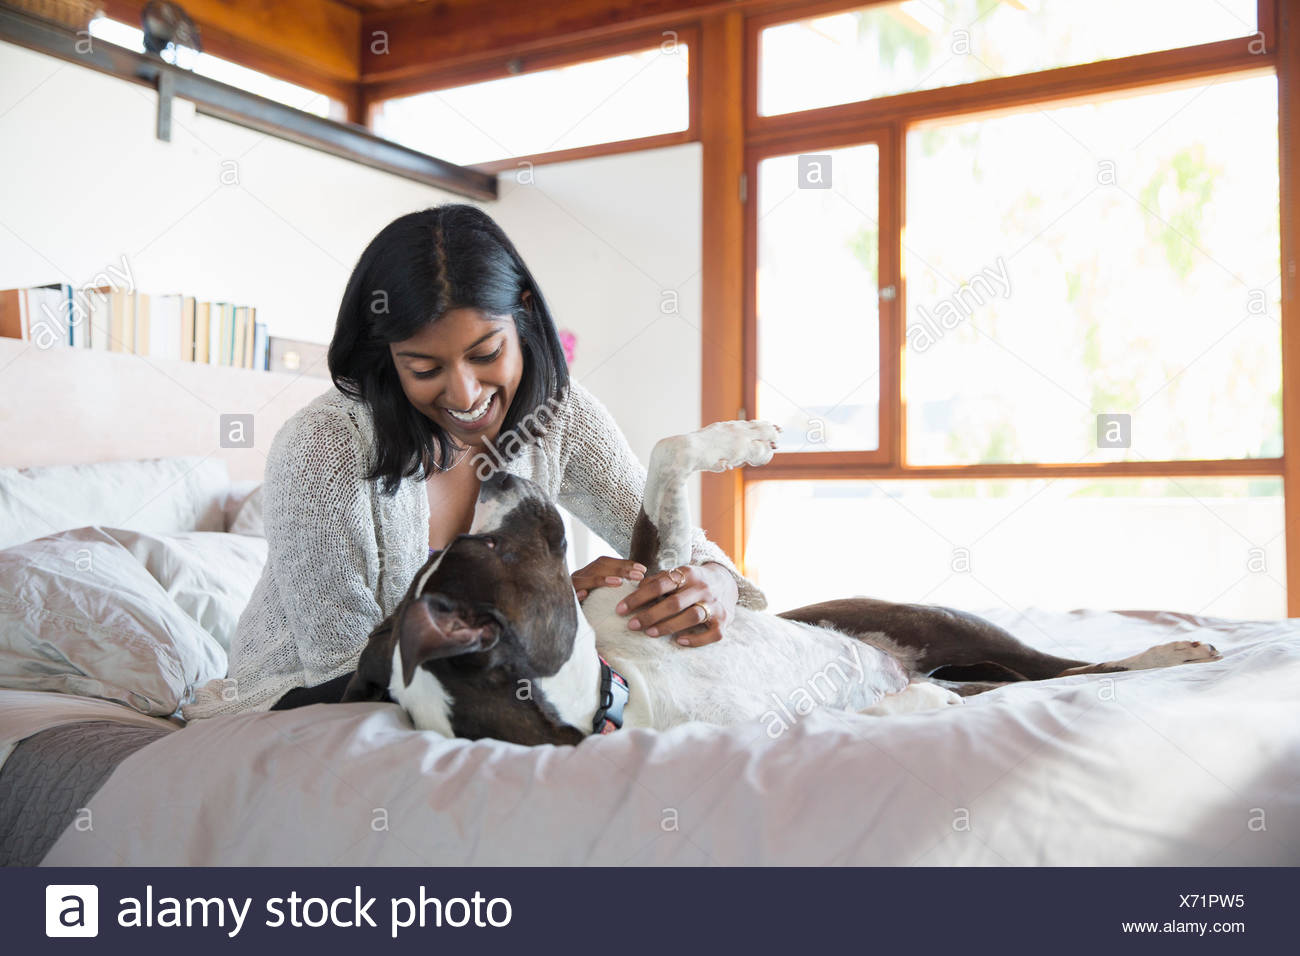 Smiling woman petting dog on bed - Stock Image